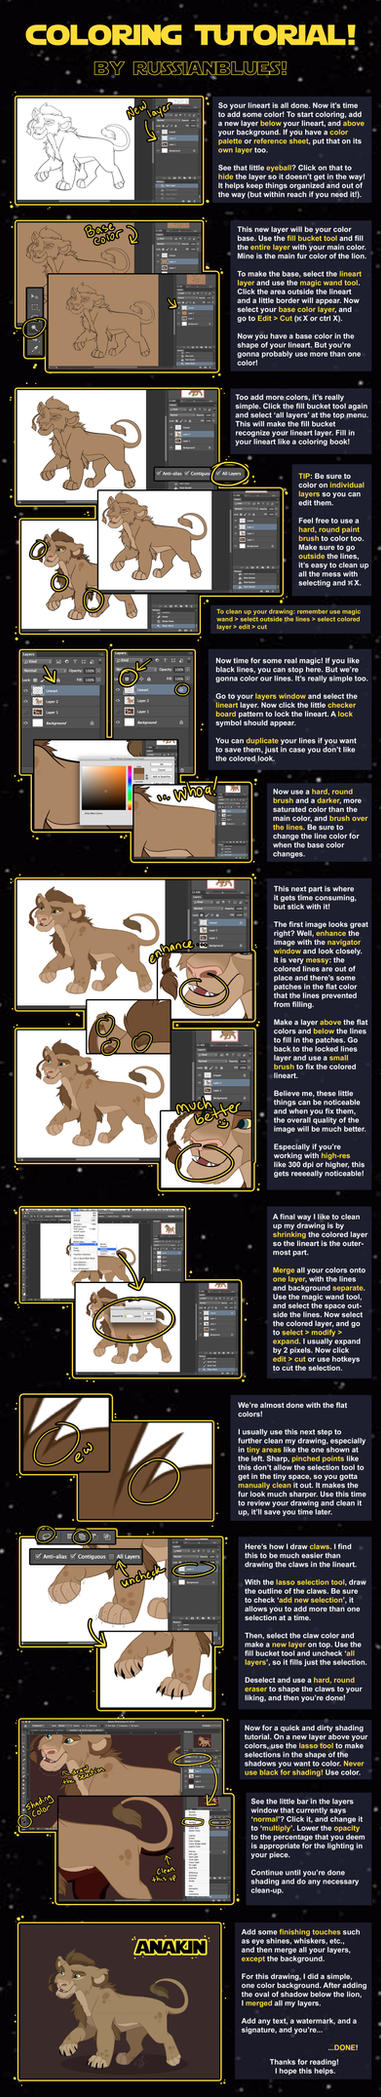 Digital Coloring Tutorial by RussianBlues